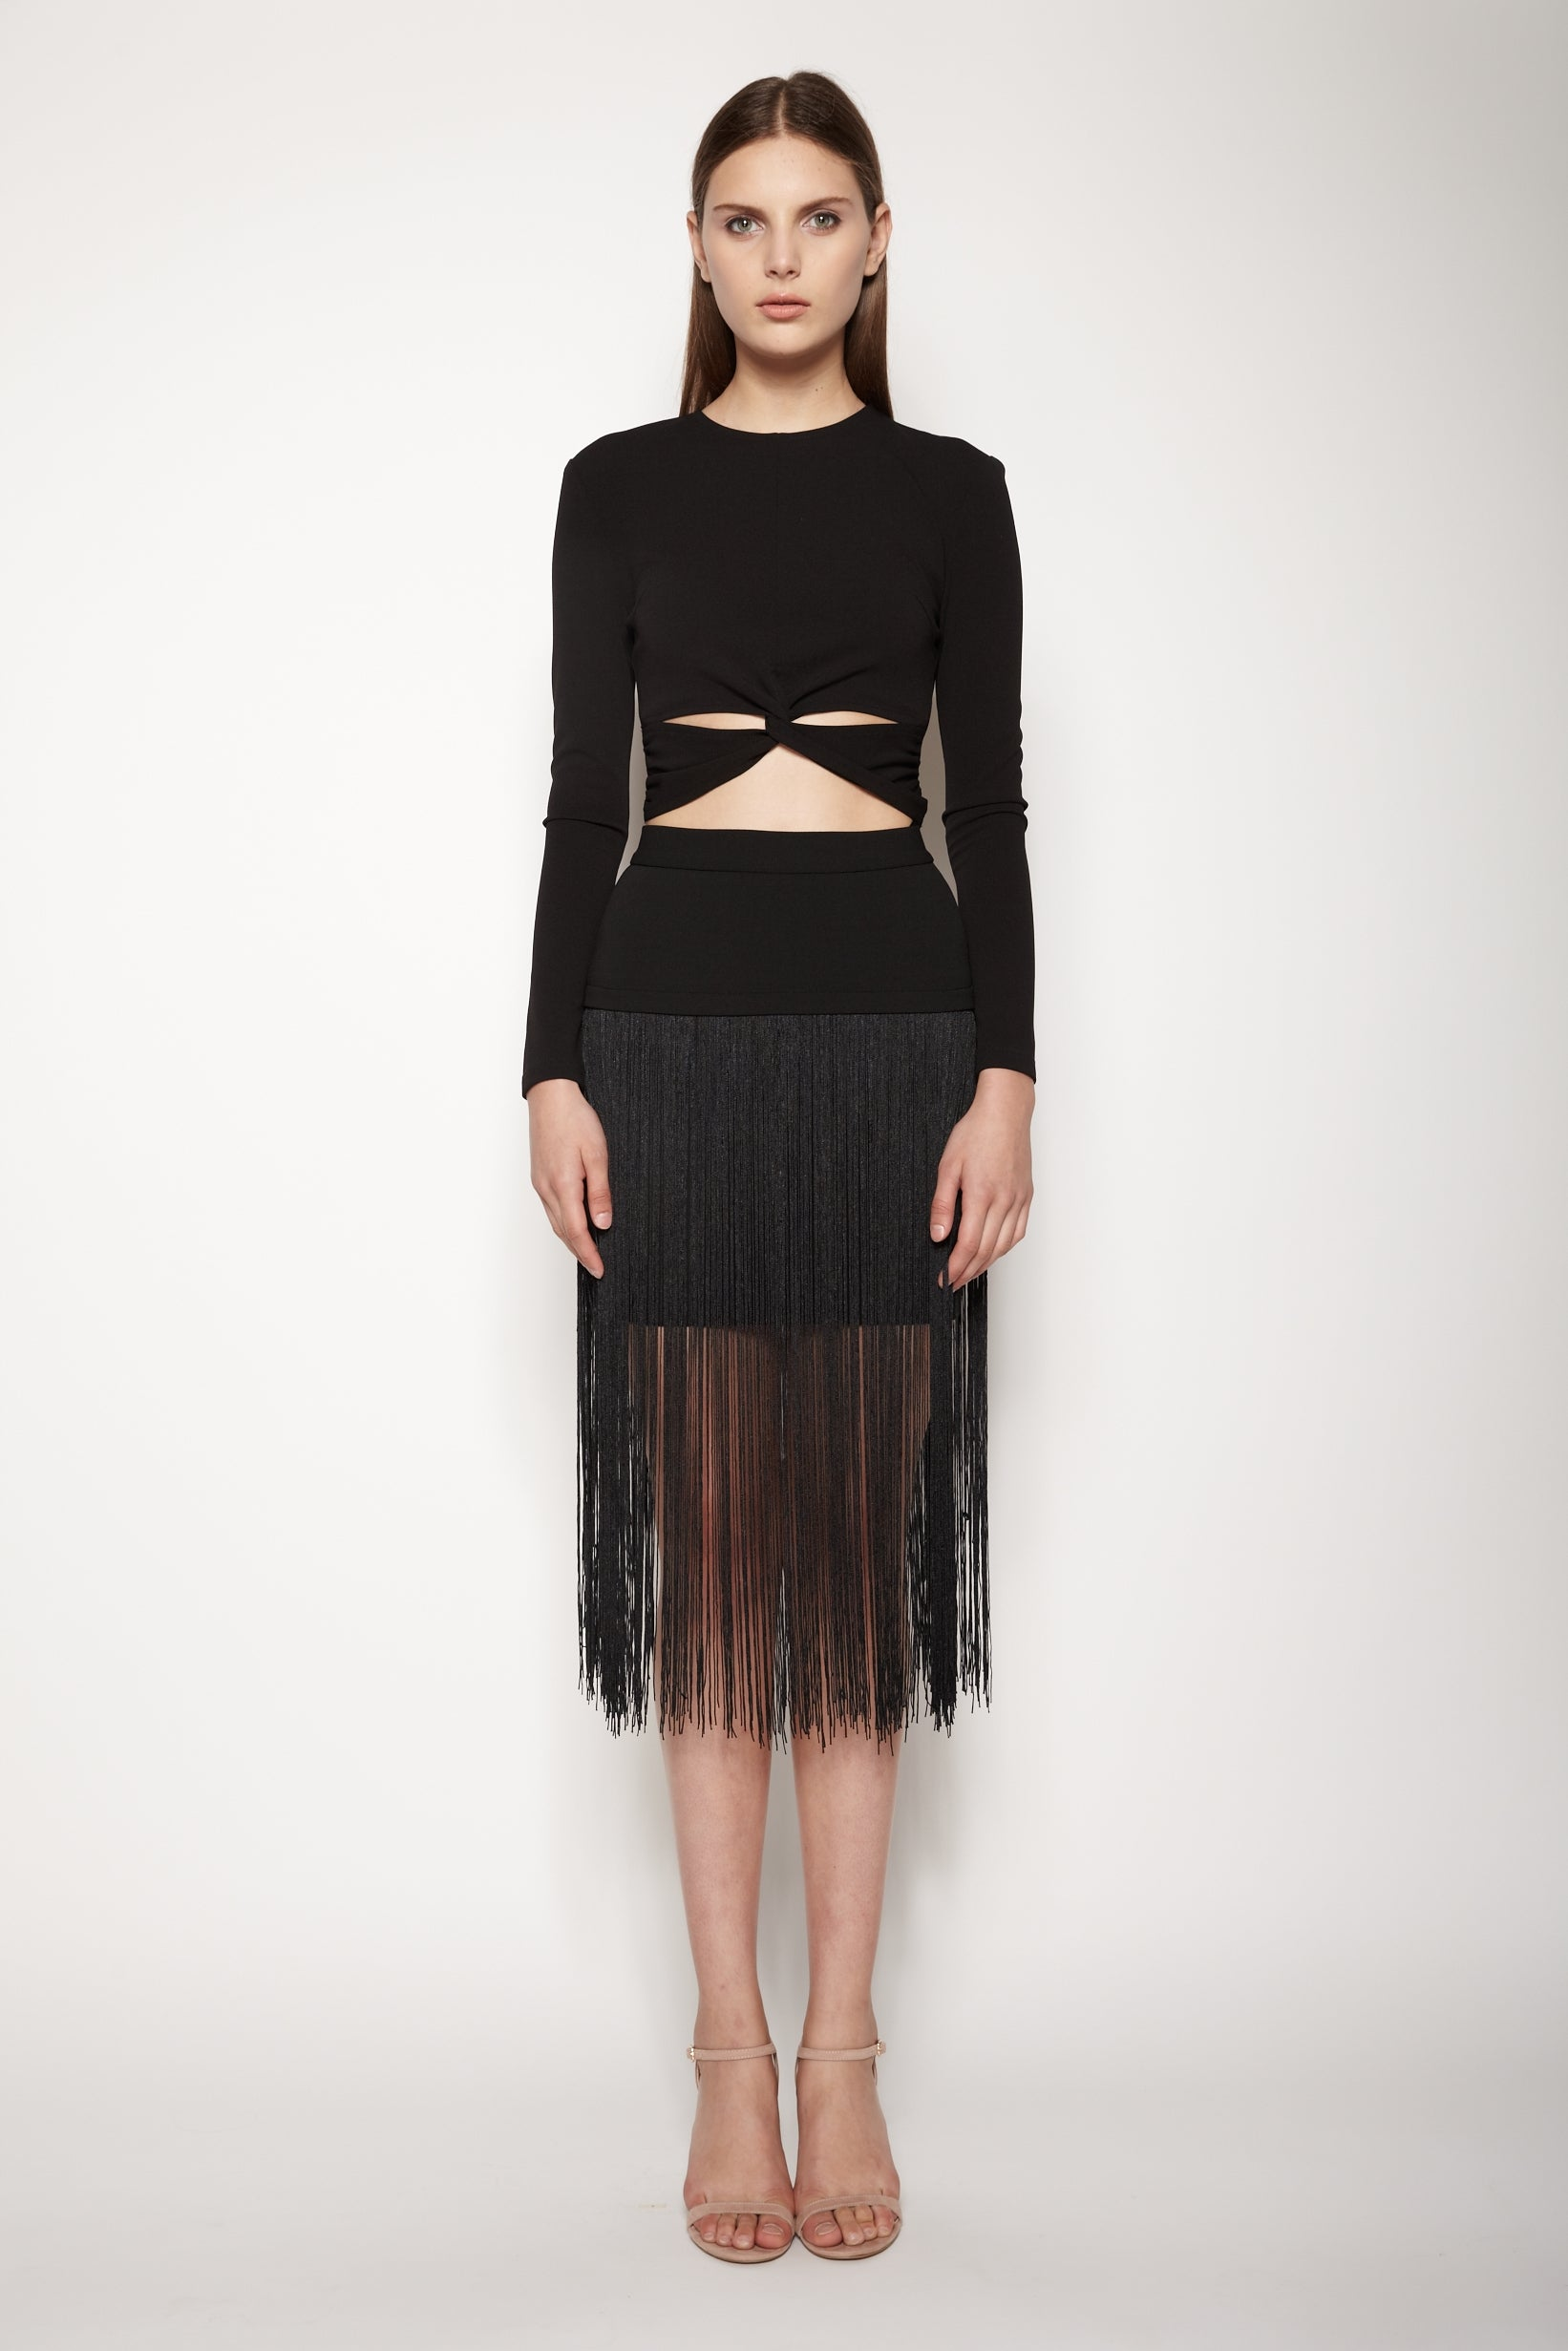 Fringe Skirt In Black